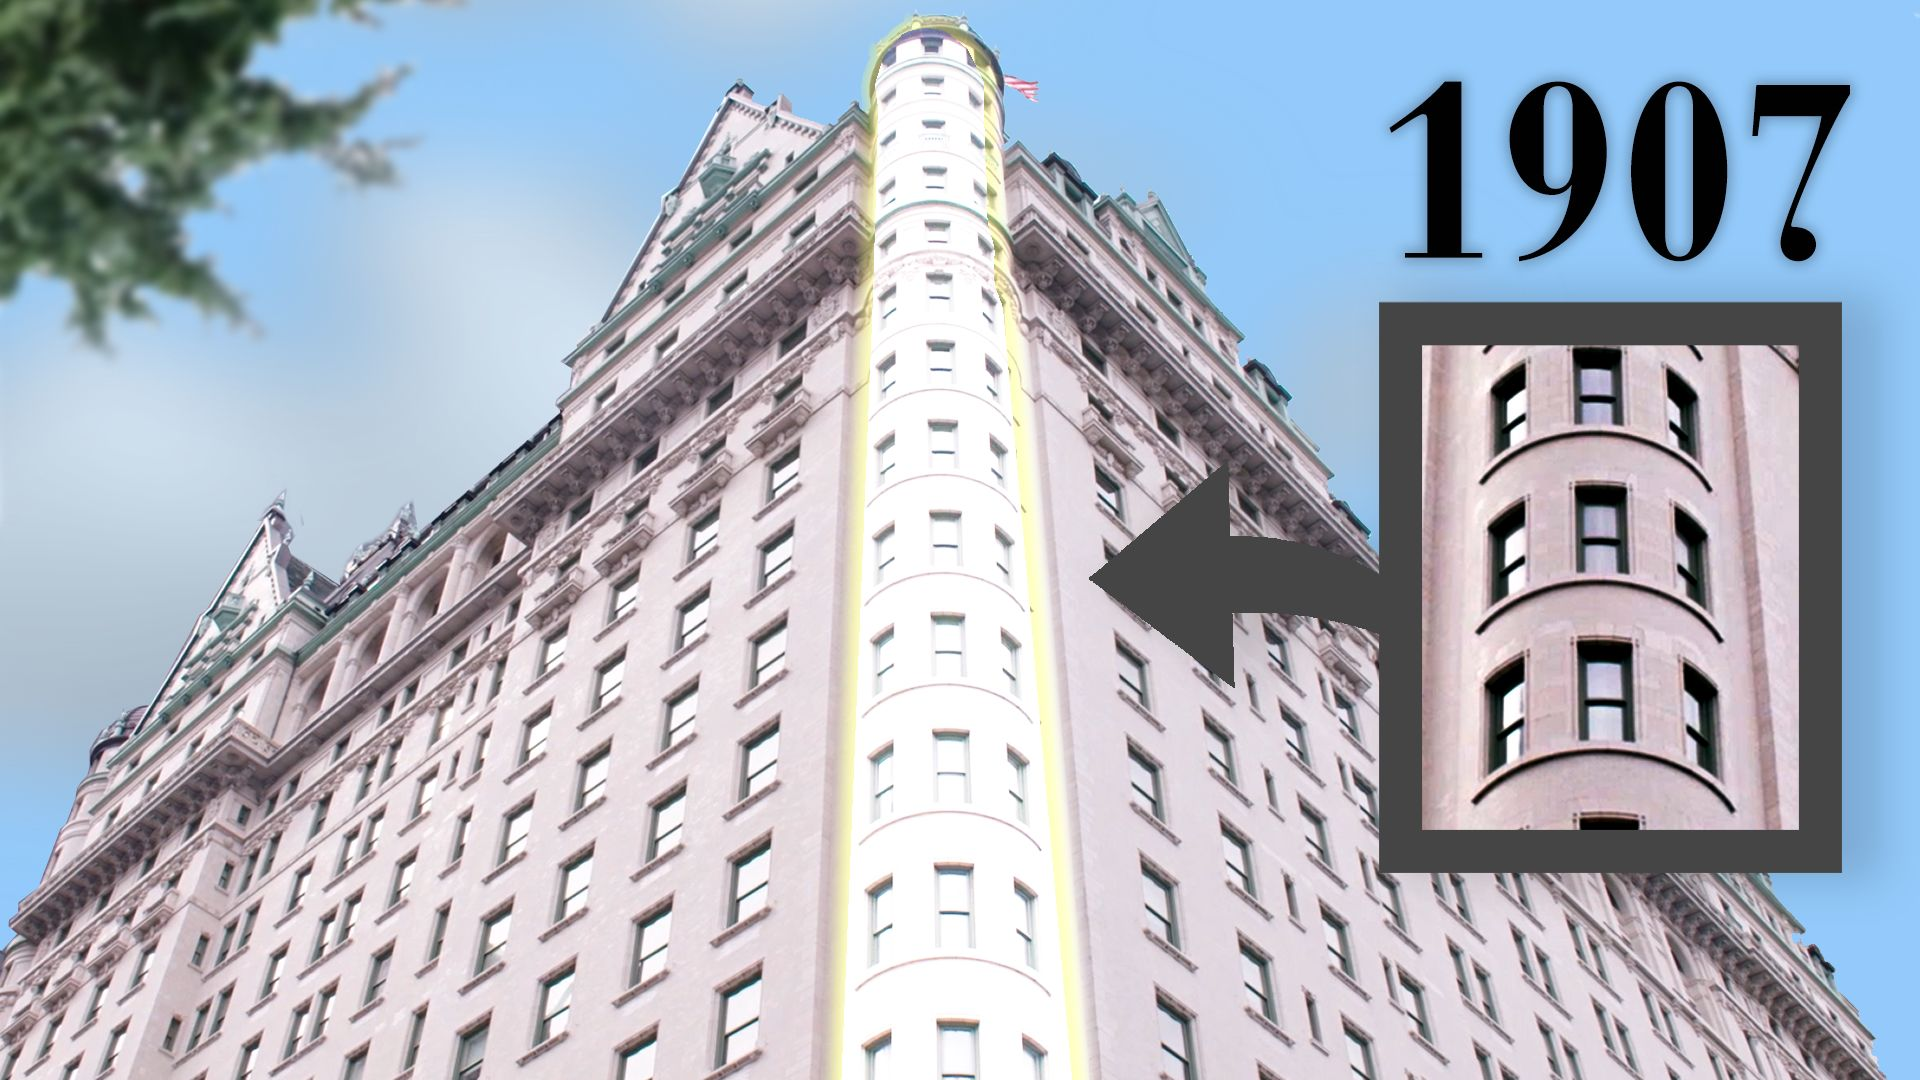 Watch Every Detail Hidden Secrets Of The Plaza Hotel Architectural Digest Video Cne Architecturaldigest Com Architectural Digest